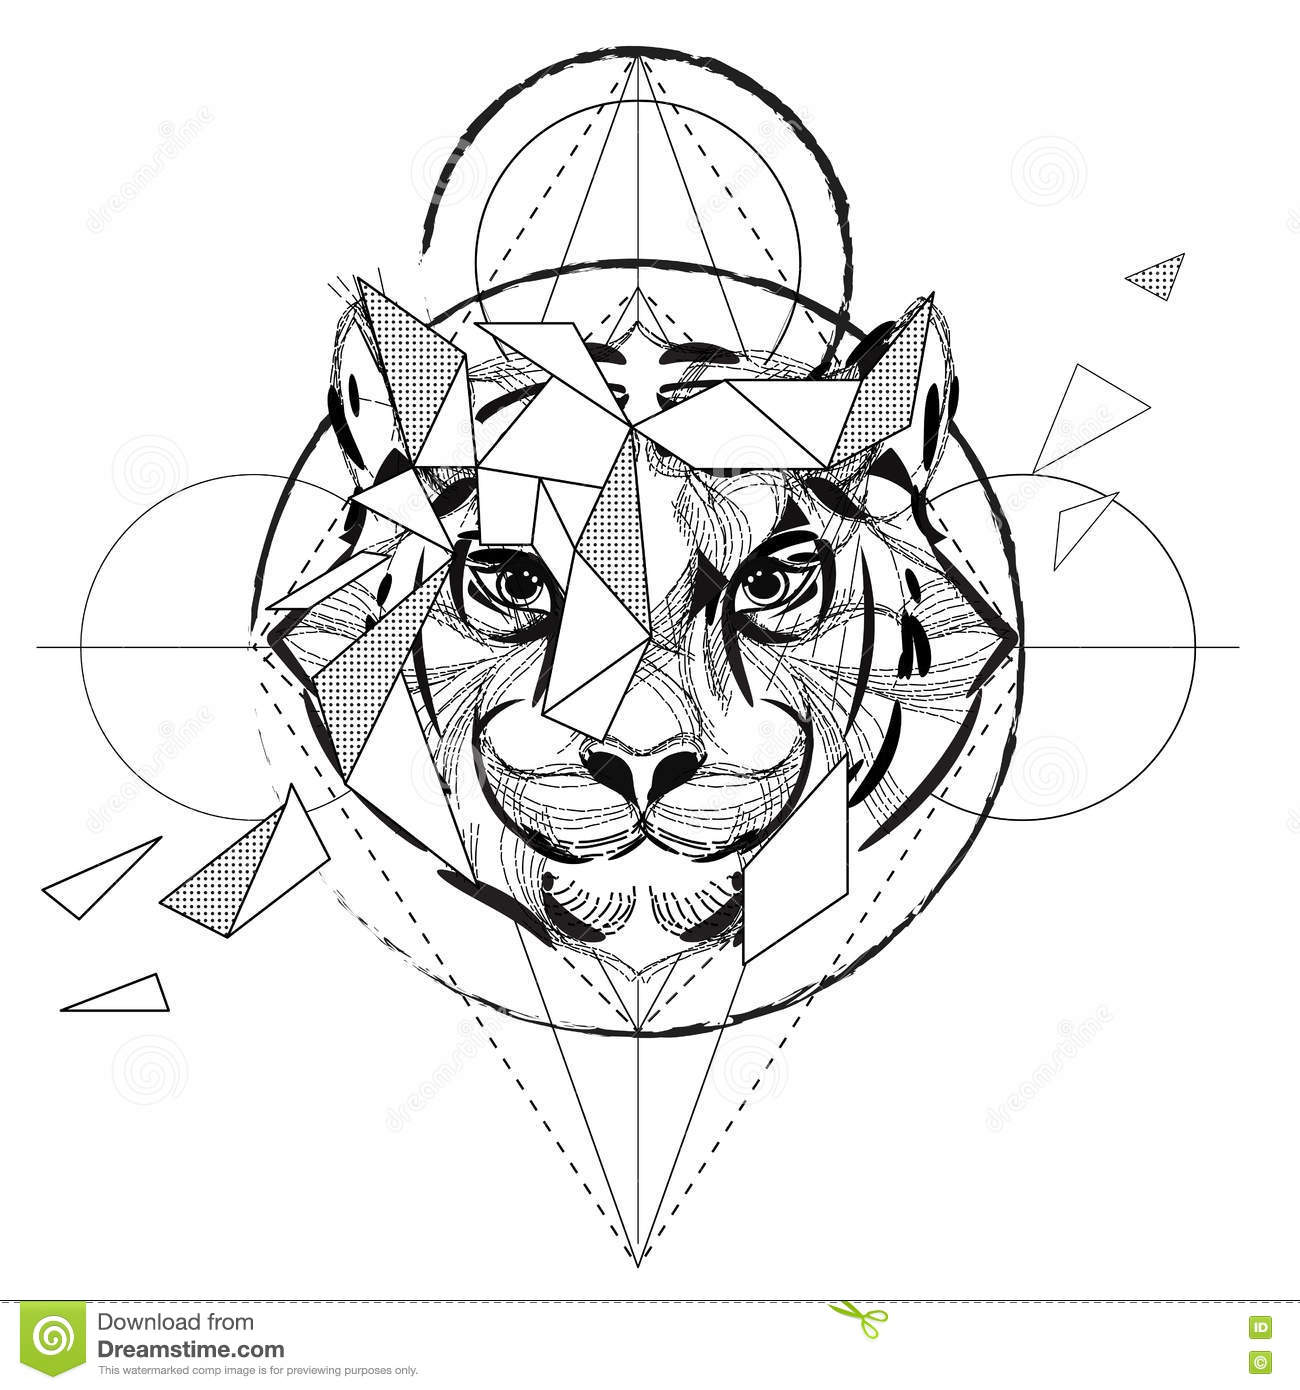 Tiger head triangular icon geometric trendy stock vector image - Wolf Head Low Poly Sketch Royalty Free Stock Photos